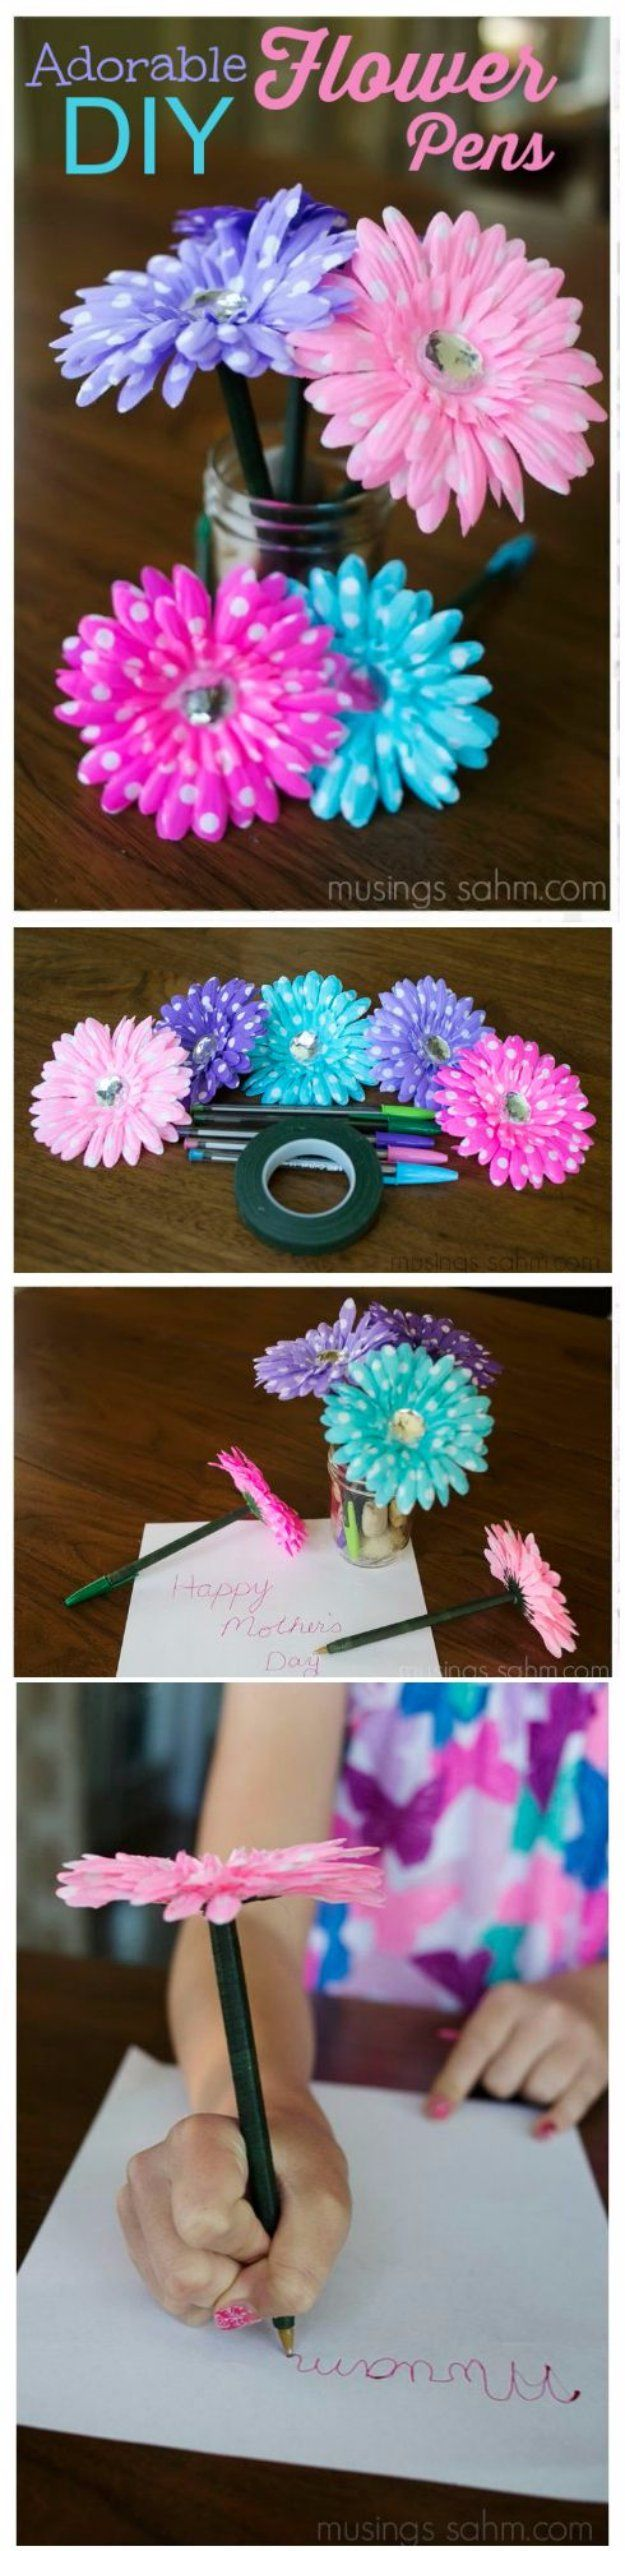 25 best ideas about easy crafts on pinterest easy for How to make arts and crafts to sell